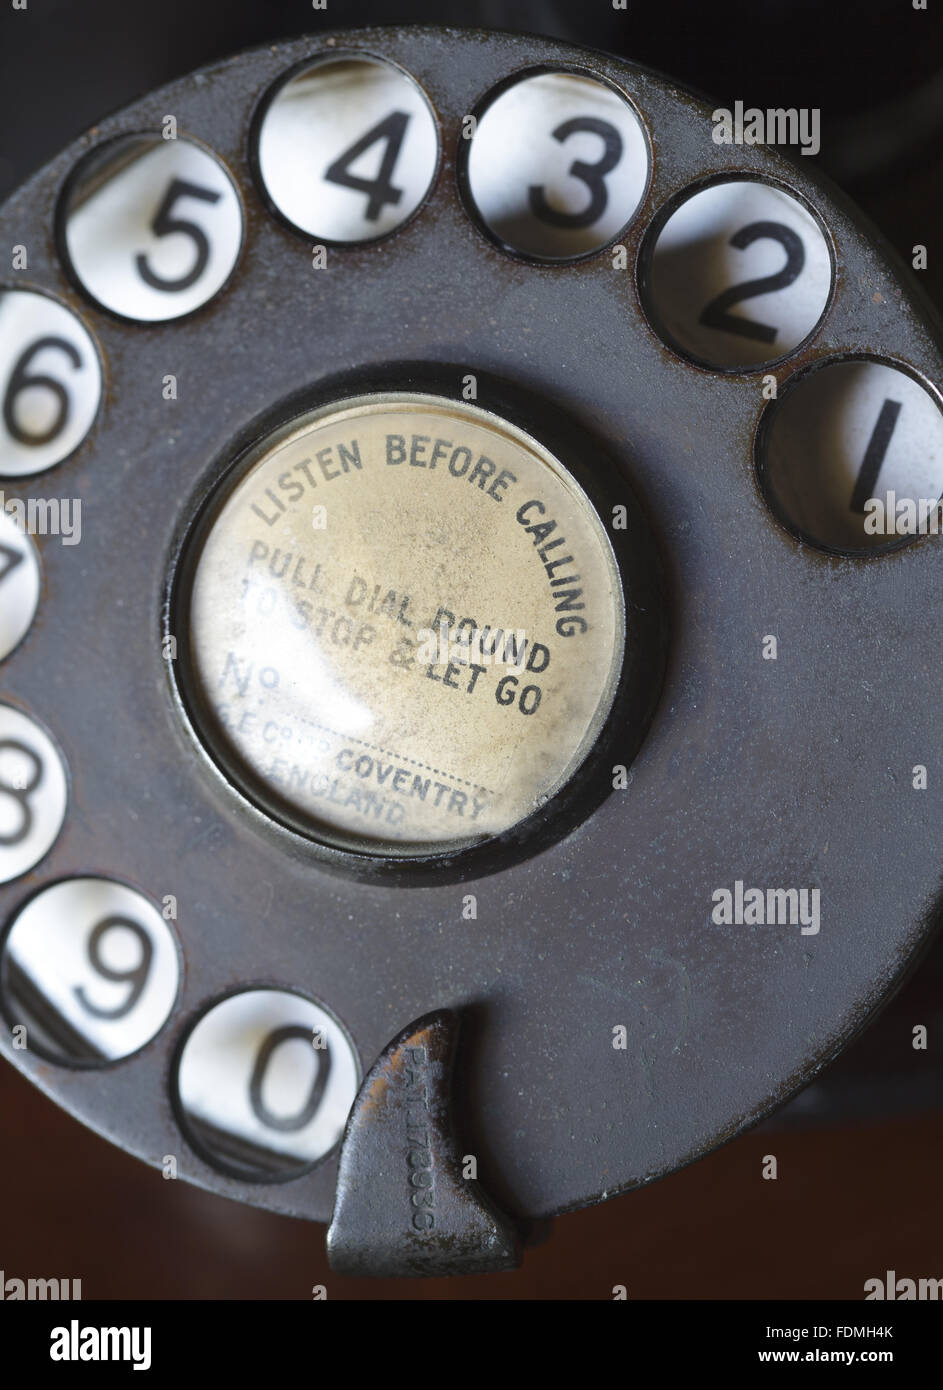 Close view of the dial of a Bakelite upright telephone made by G.E.Co. Ltd., at Kingston Lacy, Dorset. - Stock Image